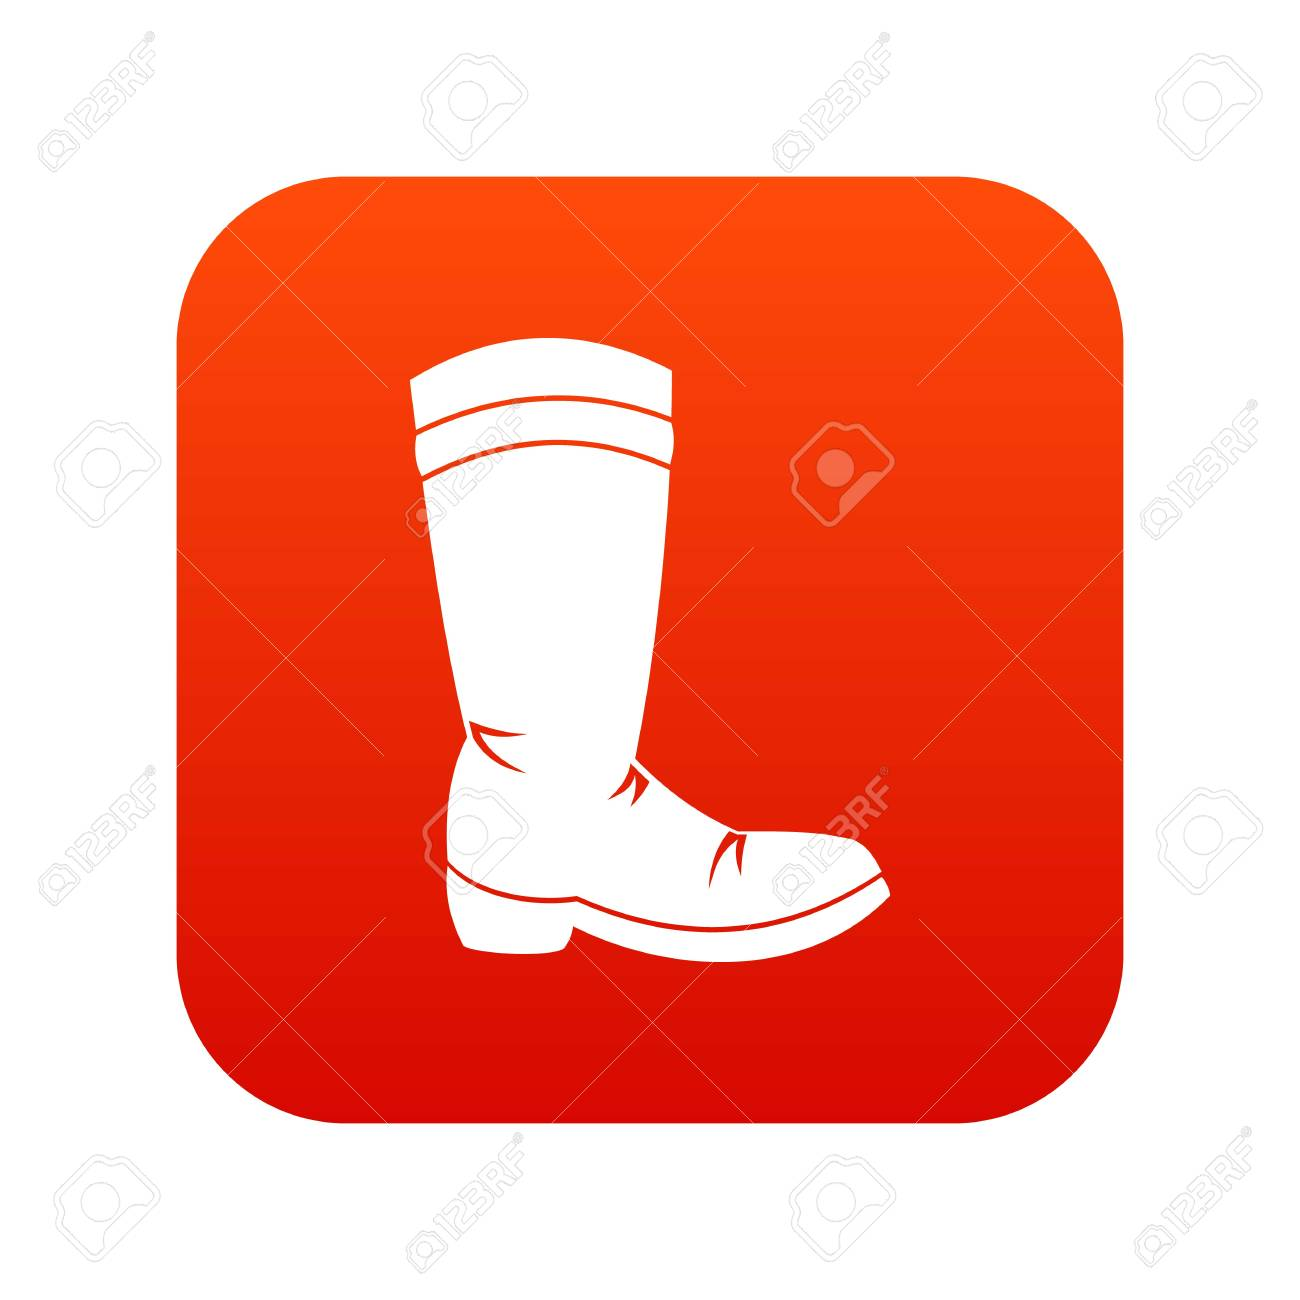 a0118a26ac7 Cowboy Boot Icon Digital Red Royalty Free Cliparts, Vectors, And ...